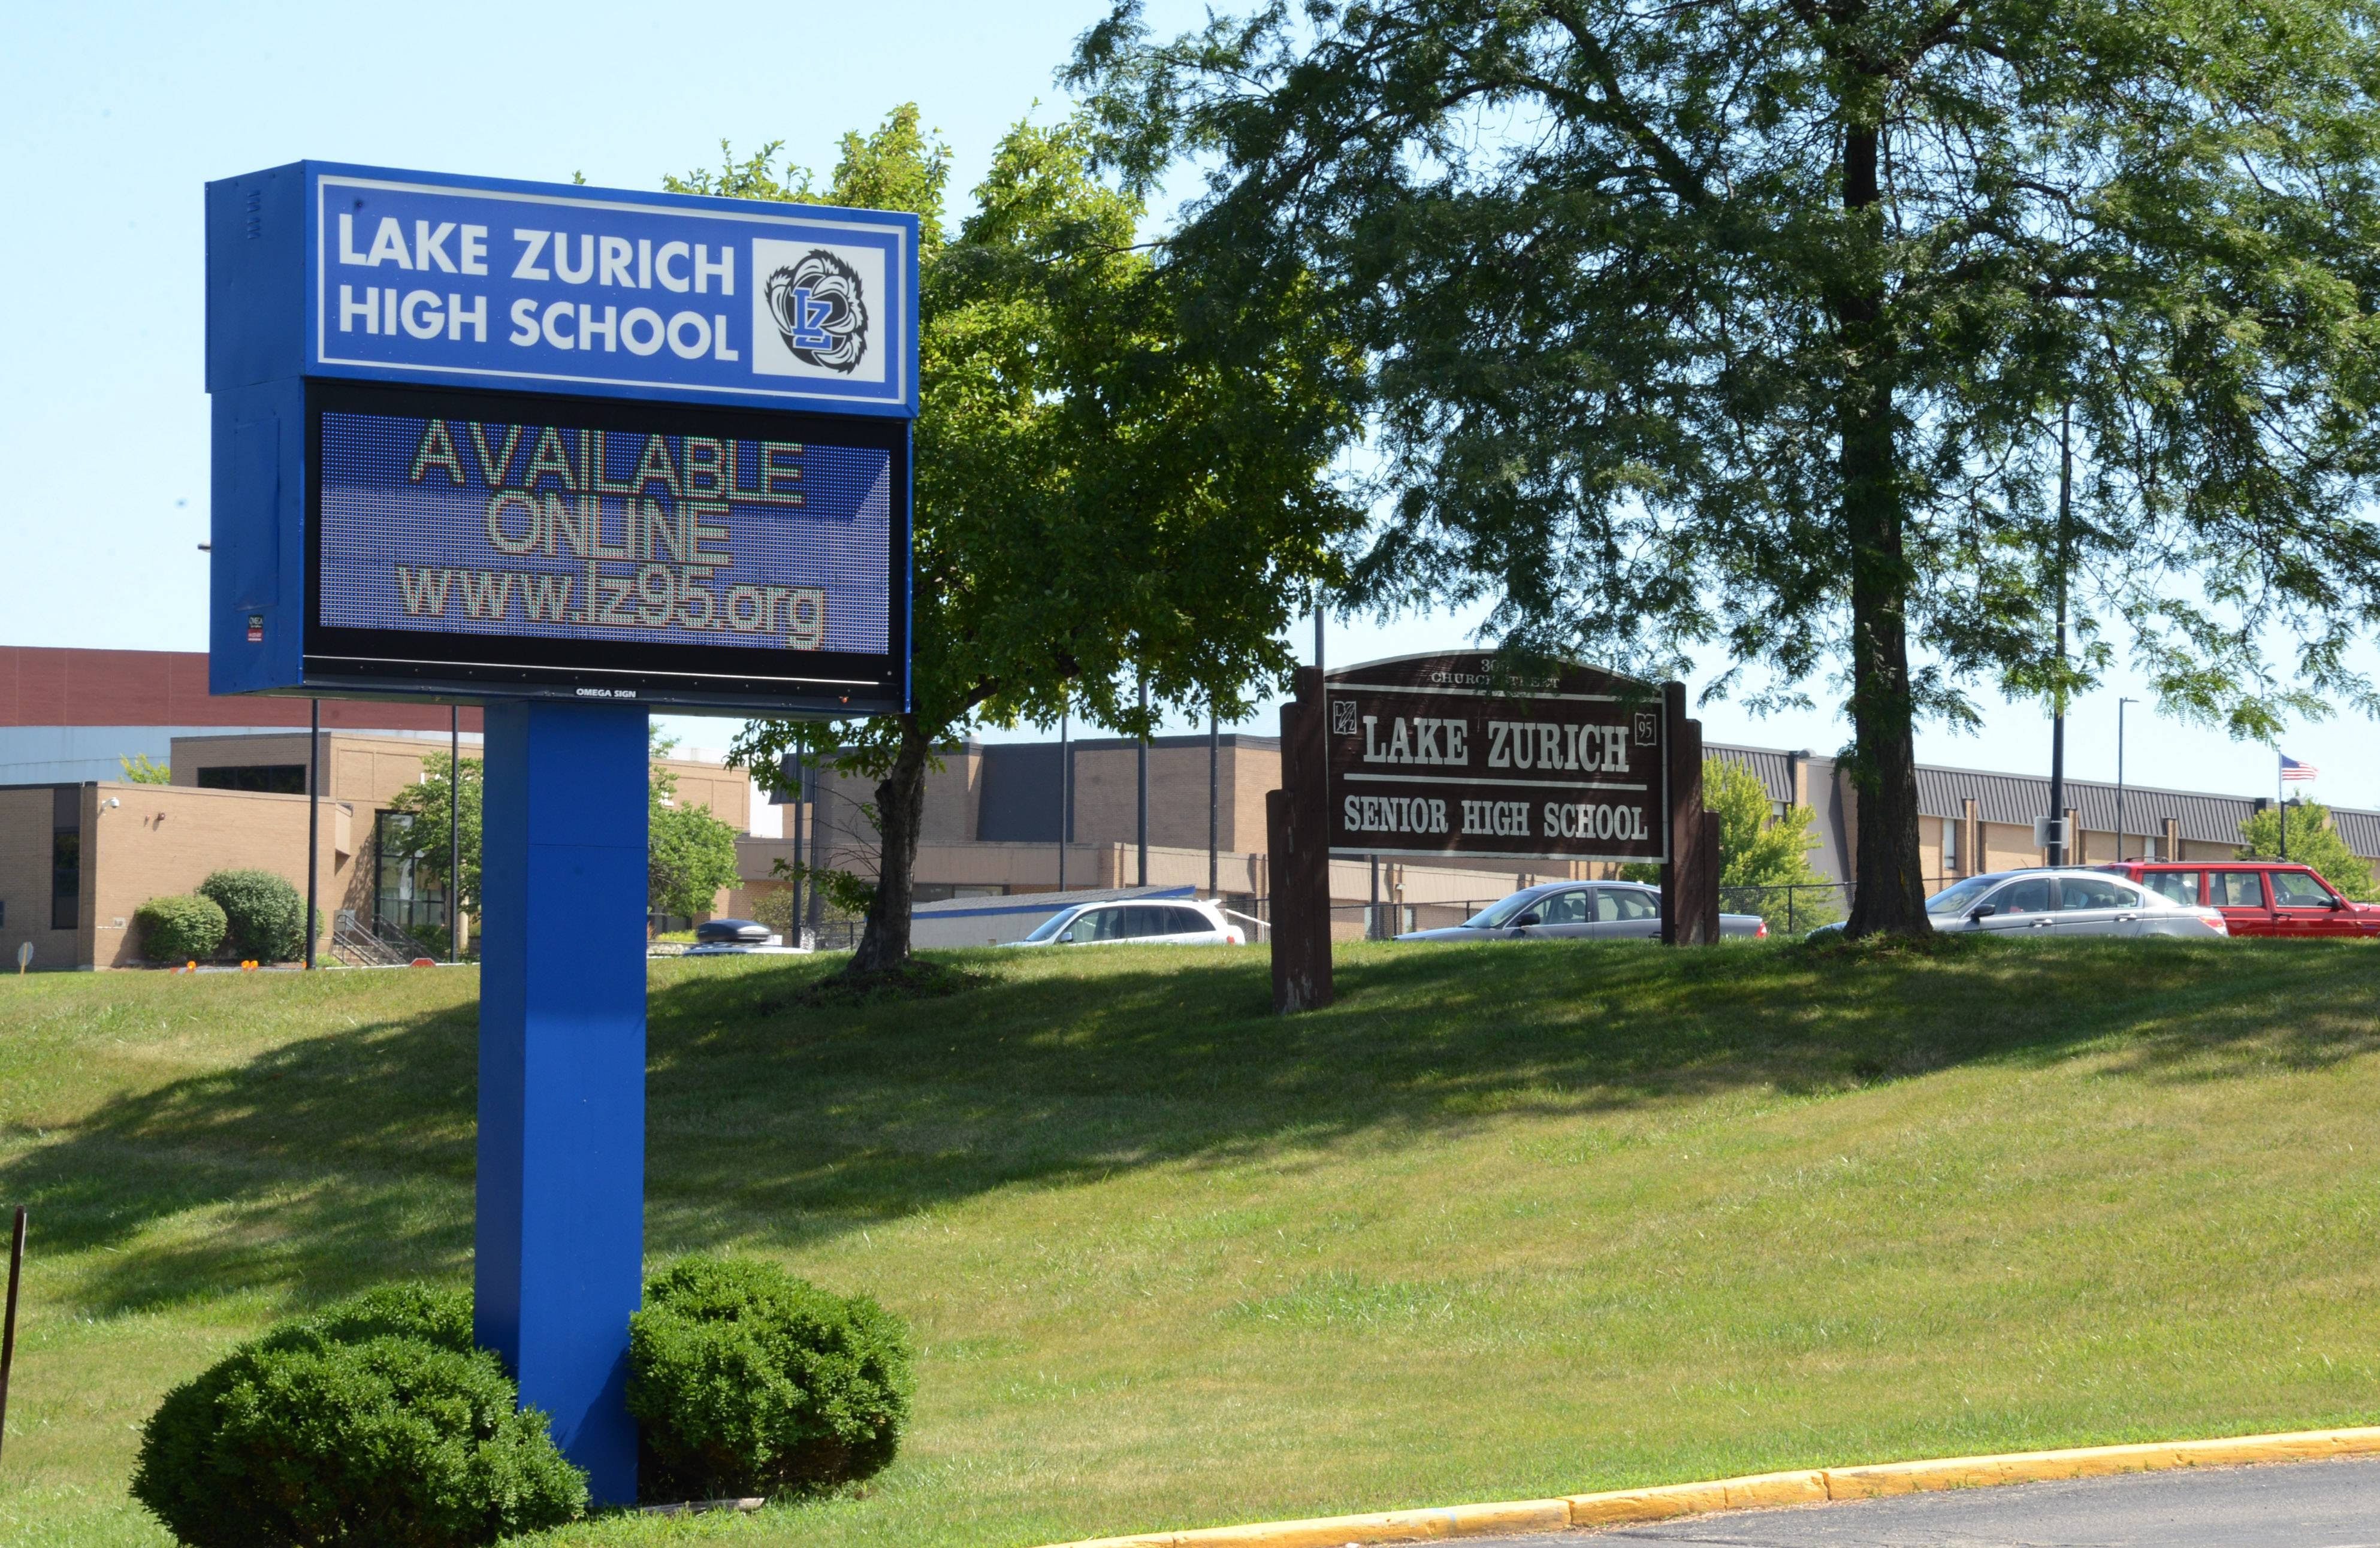 Inverness detective named in Lake Zurich hazing suit